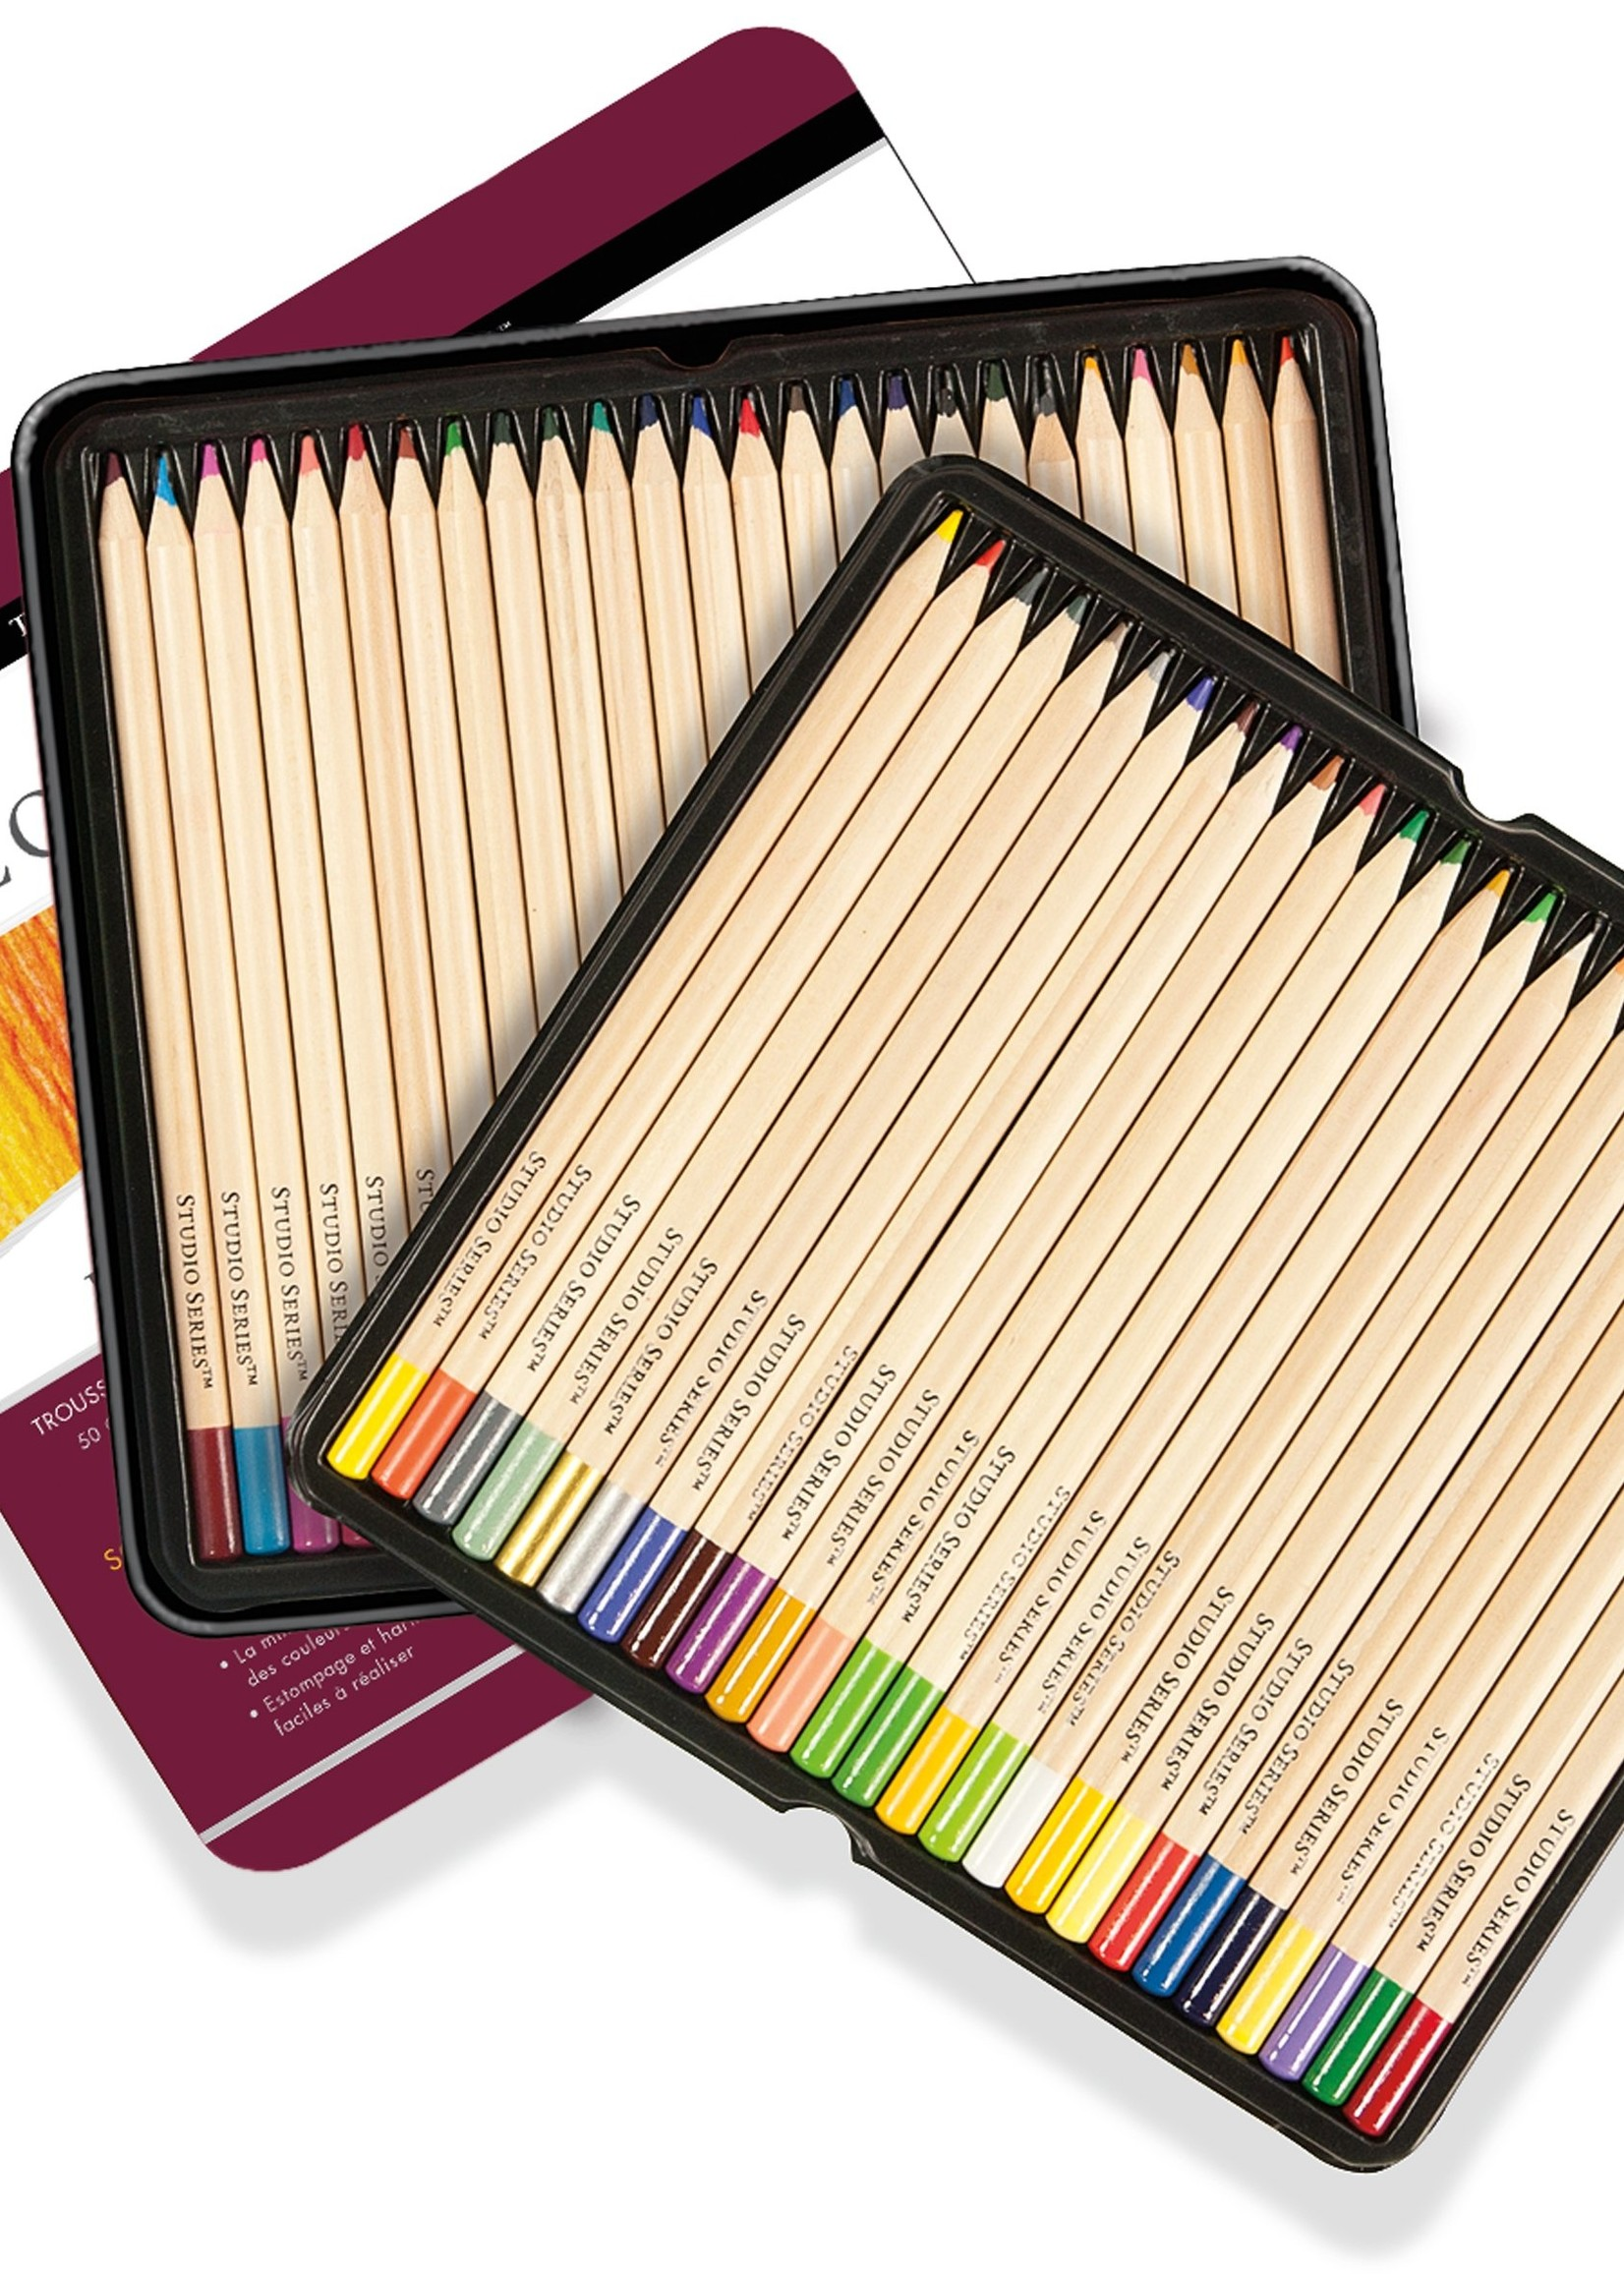 Deluxe Colored Pencil Set | 50 Count